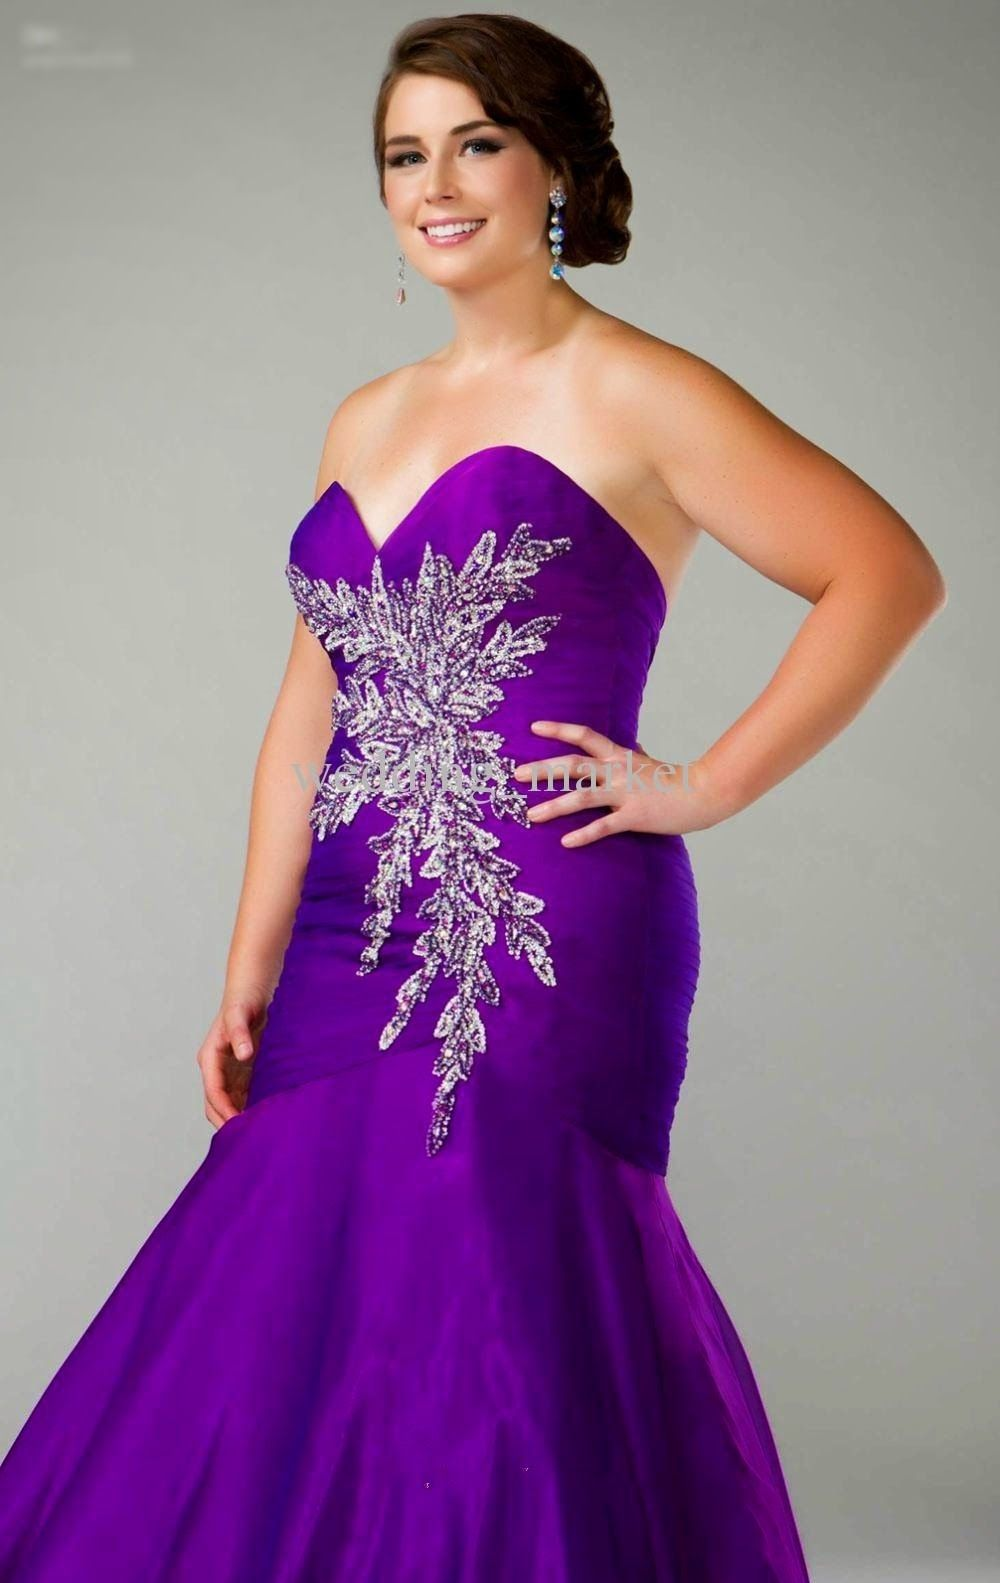 2019 year looks- Wedding Purple dress plus size pictures